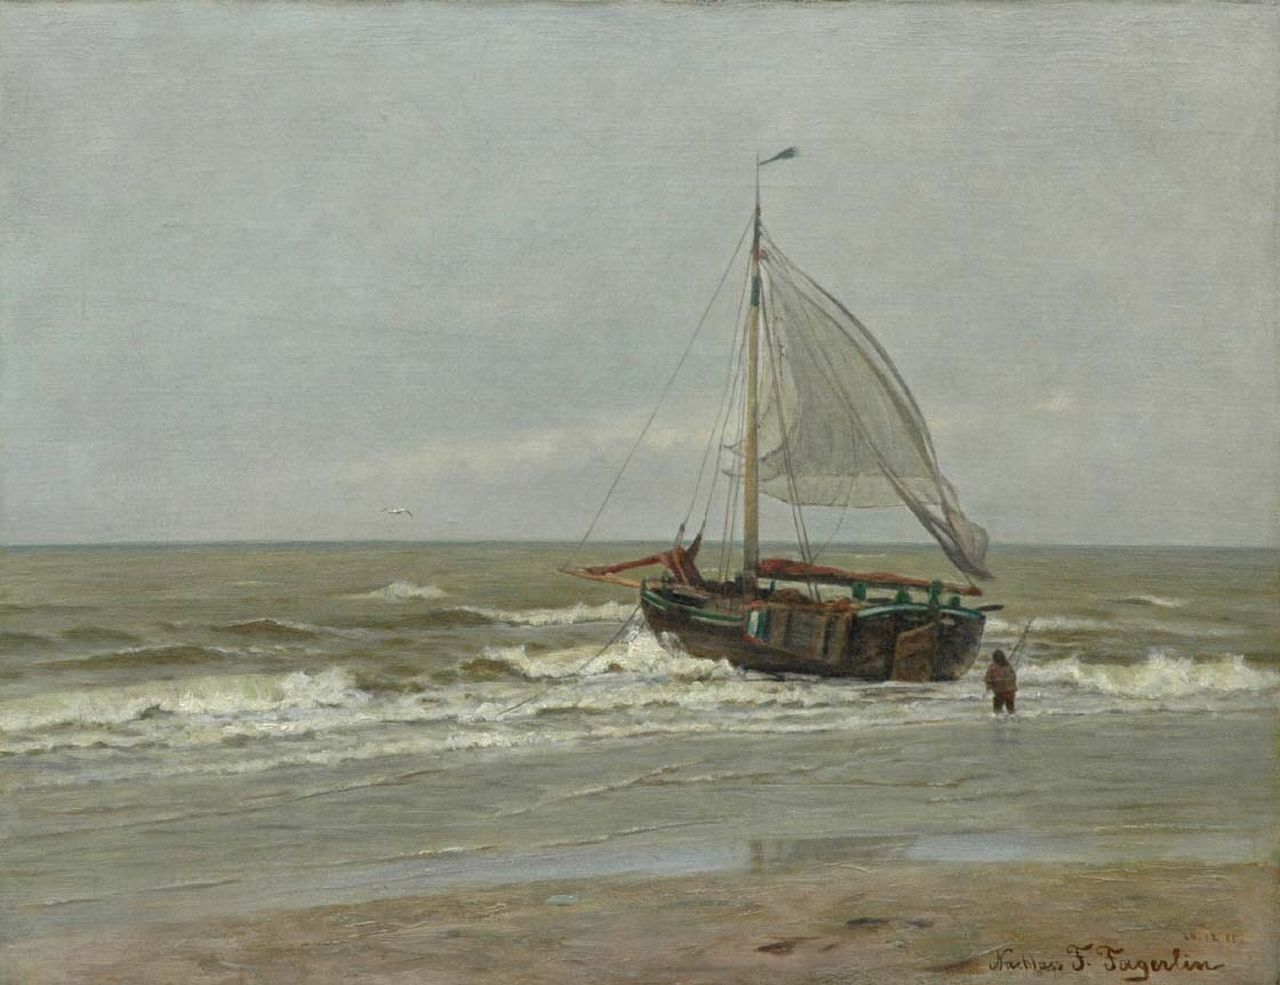 Ferdinand Julius Fagerlin | Fishing boat in the surf, oil on canvas, 37.3 x 48.5 cm, signed l.r. and executed on 24.12.85